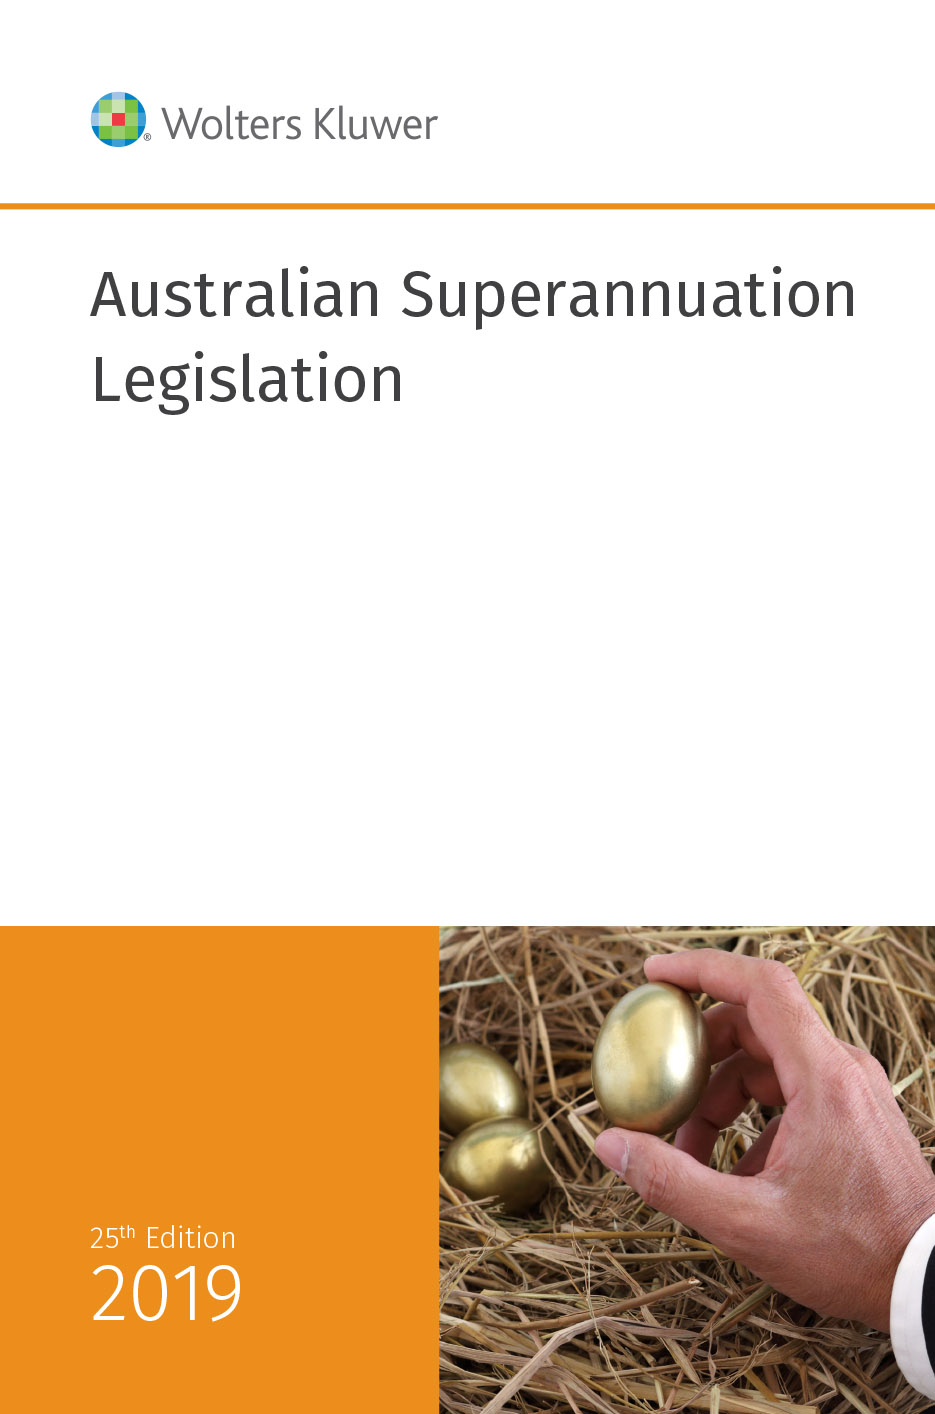 Australian Superannuation Legislation 2019